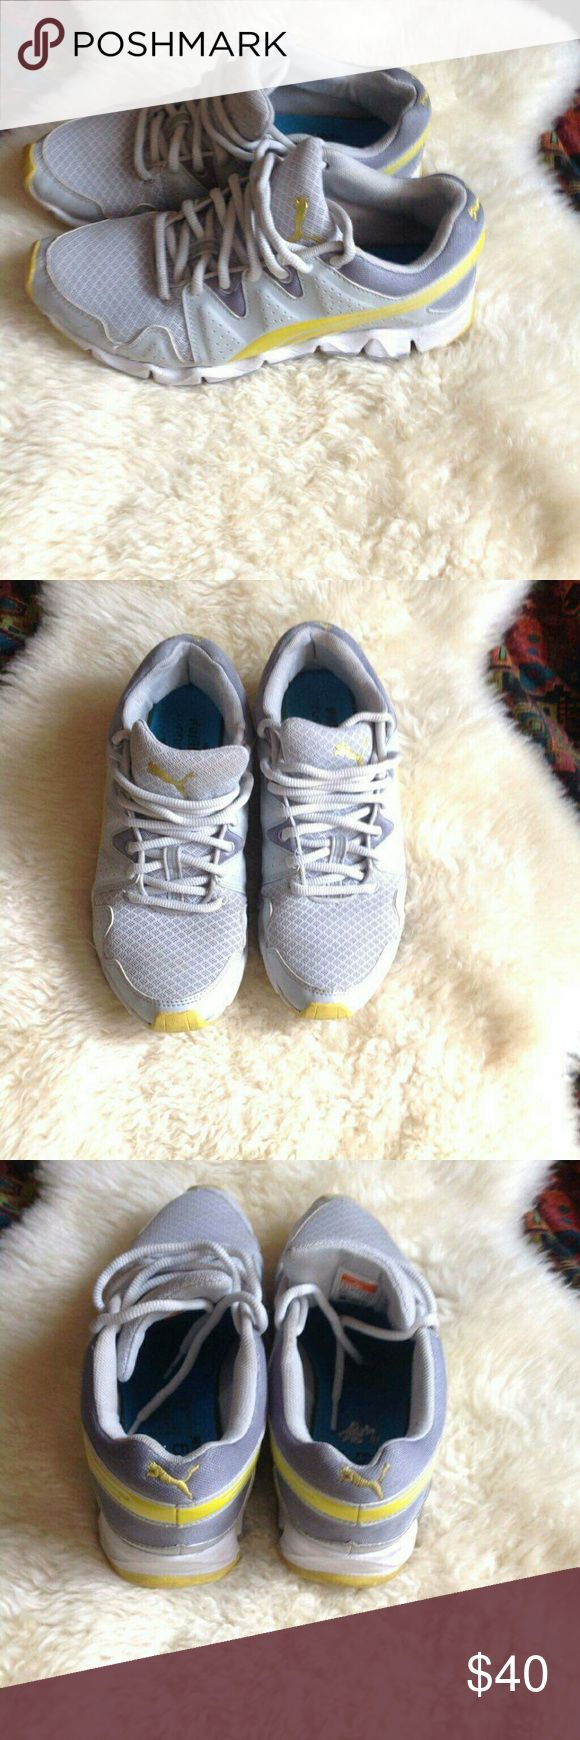 PUMA Running shoes Great addition for the sport girls...something I am not. So, I am selling these.   Gently used. Used less than a handful of times. Super light and comfortable. No damages or stains.  Offers welcome! Puma Shoes Sneakers